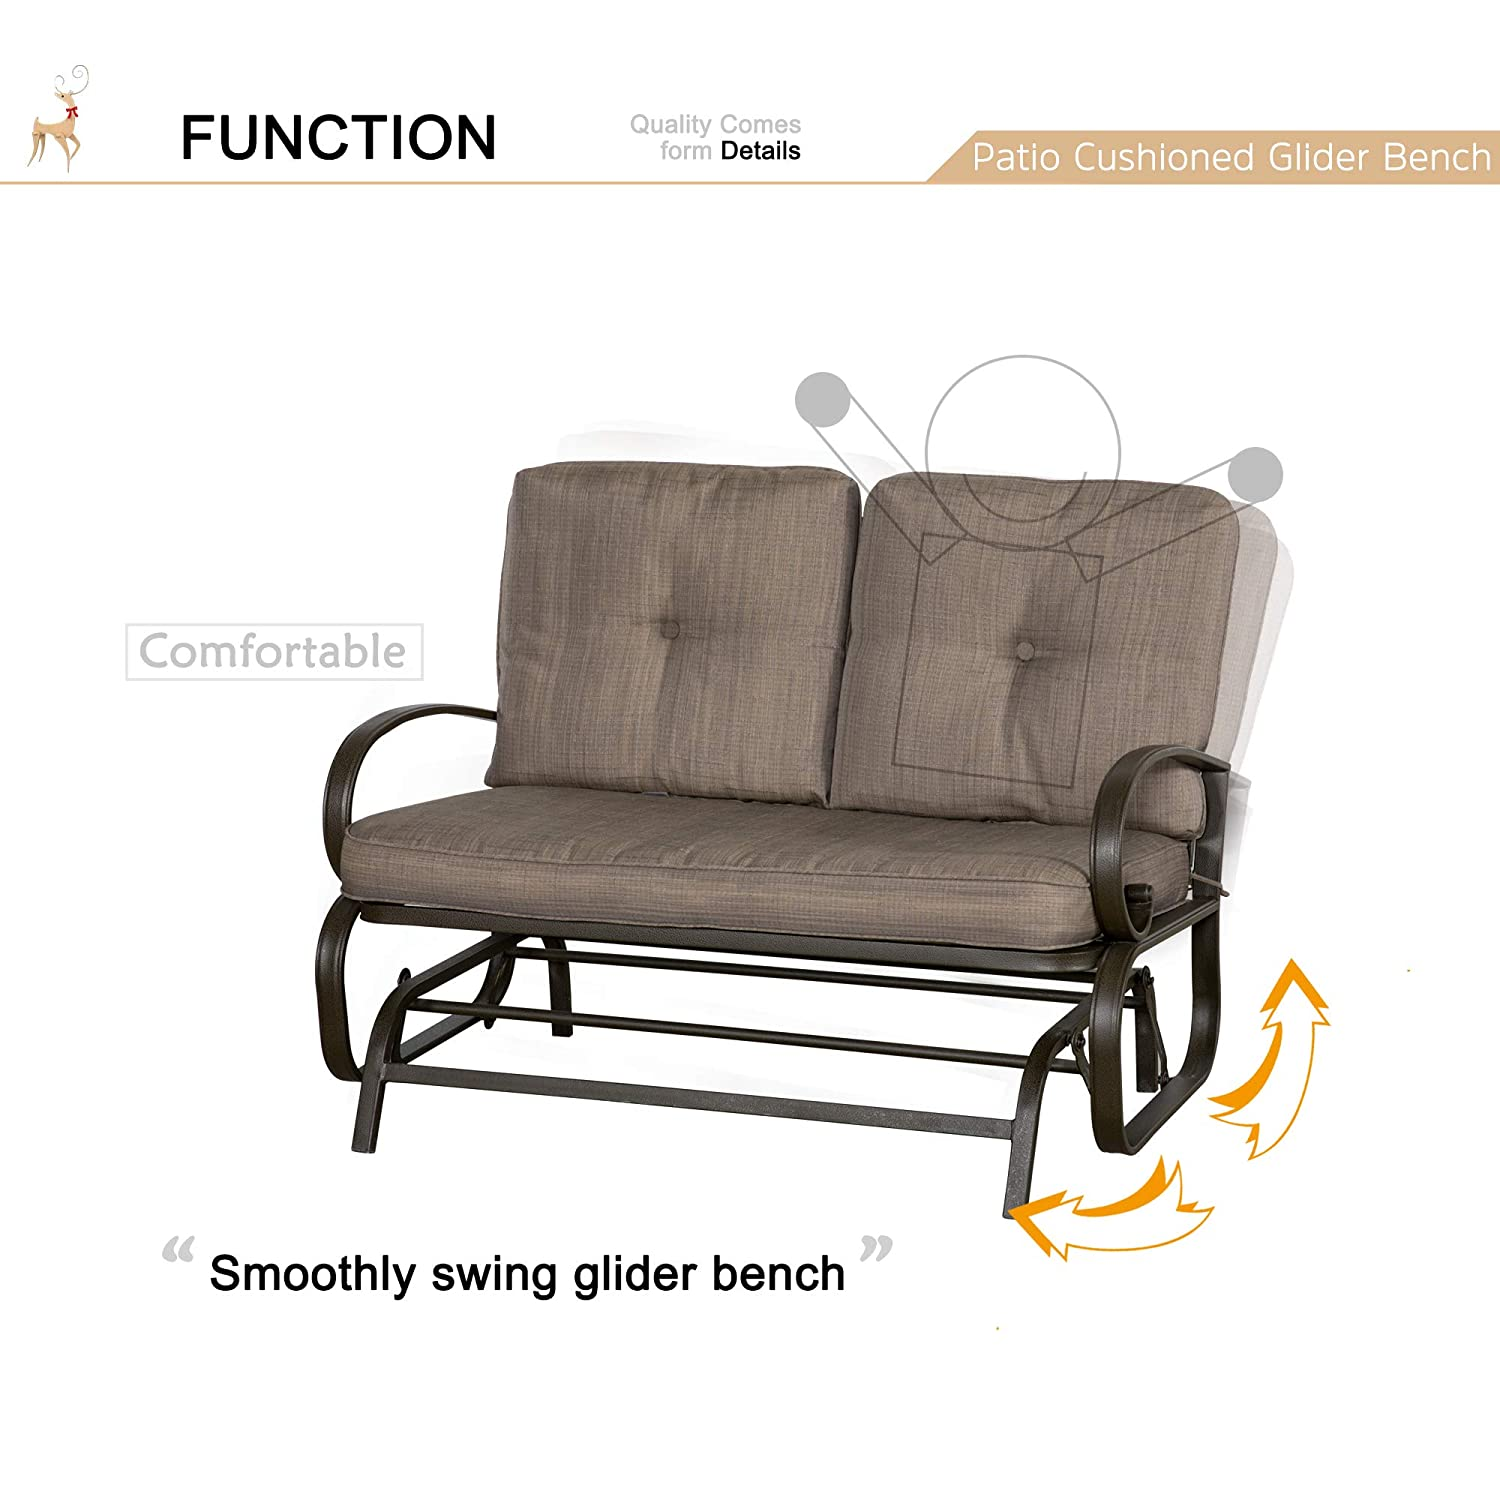 Wilcum patio loveseat patio glider outdoor loveseat furniture outdoor glider bench modern indoor outdoor furniture patio furniture sets cushioned chair